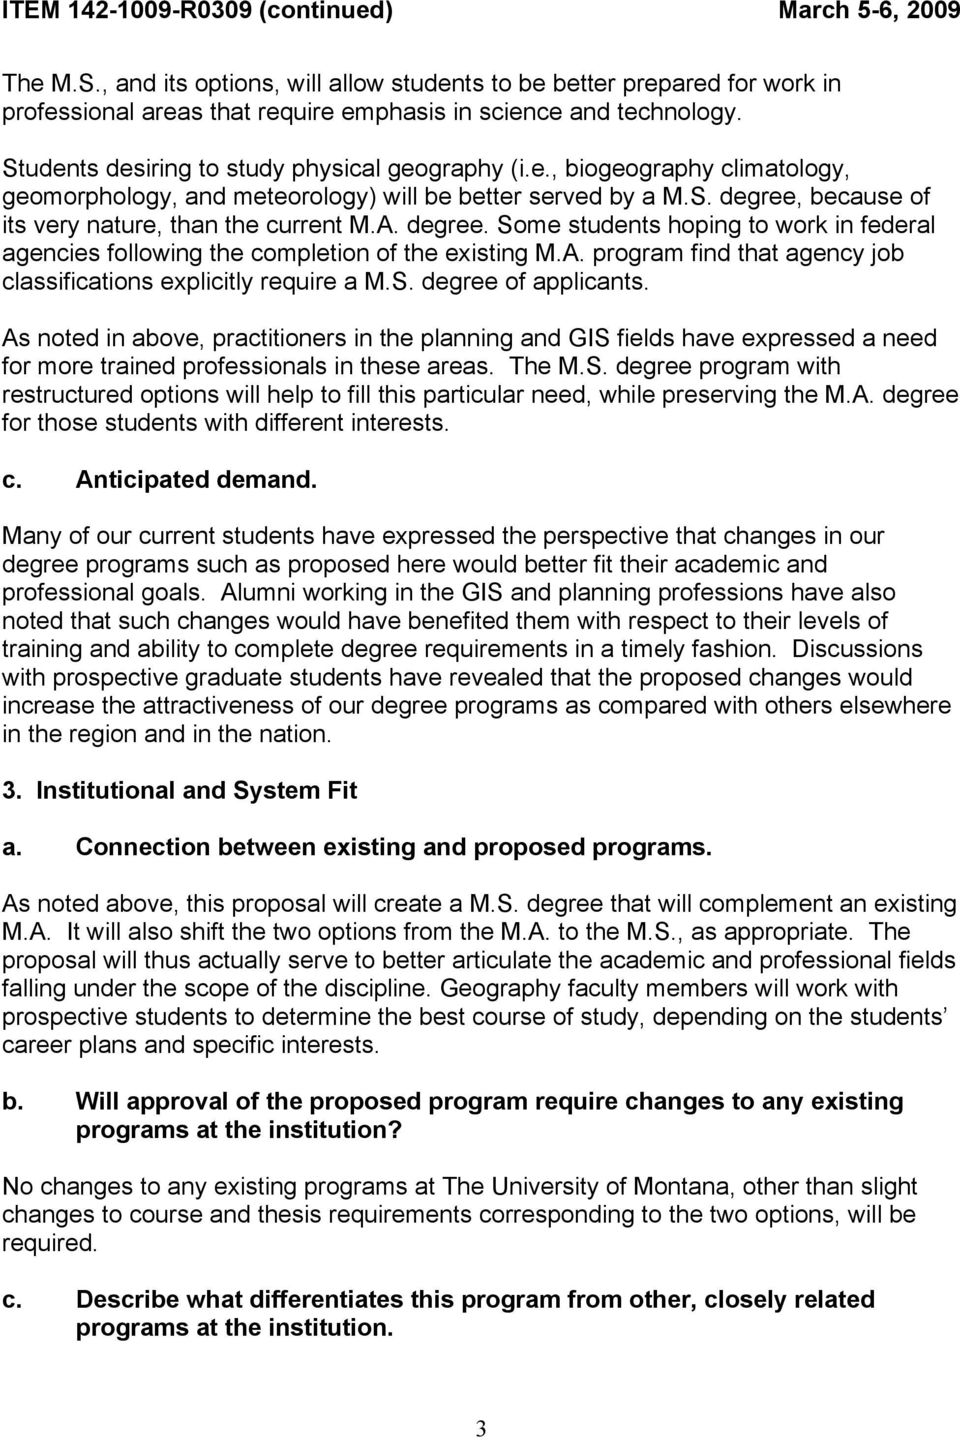 S. degree of applicants. As noted in above, practitioners in the planning and GIS fields have expressed a need for more trained professionals in these areas. The M.S. degree program with restructured options will help to fill this particular need, while preserving the M.